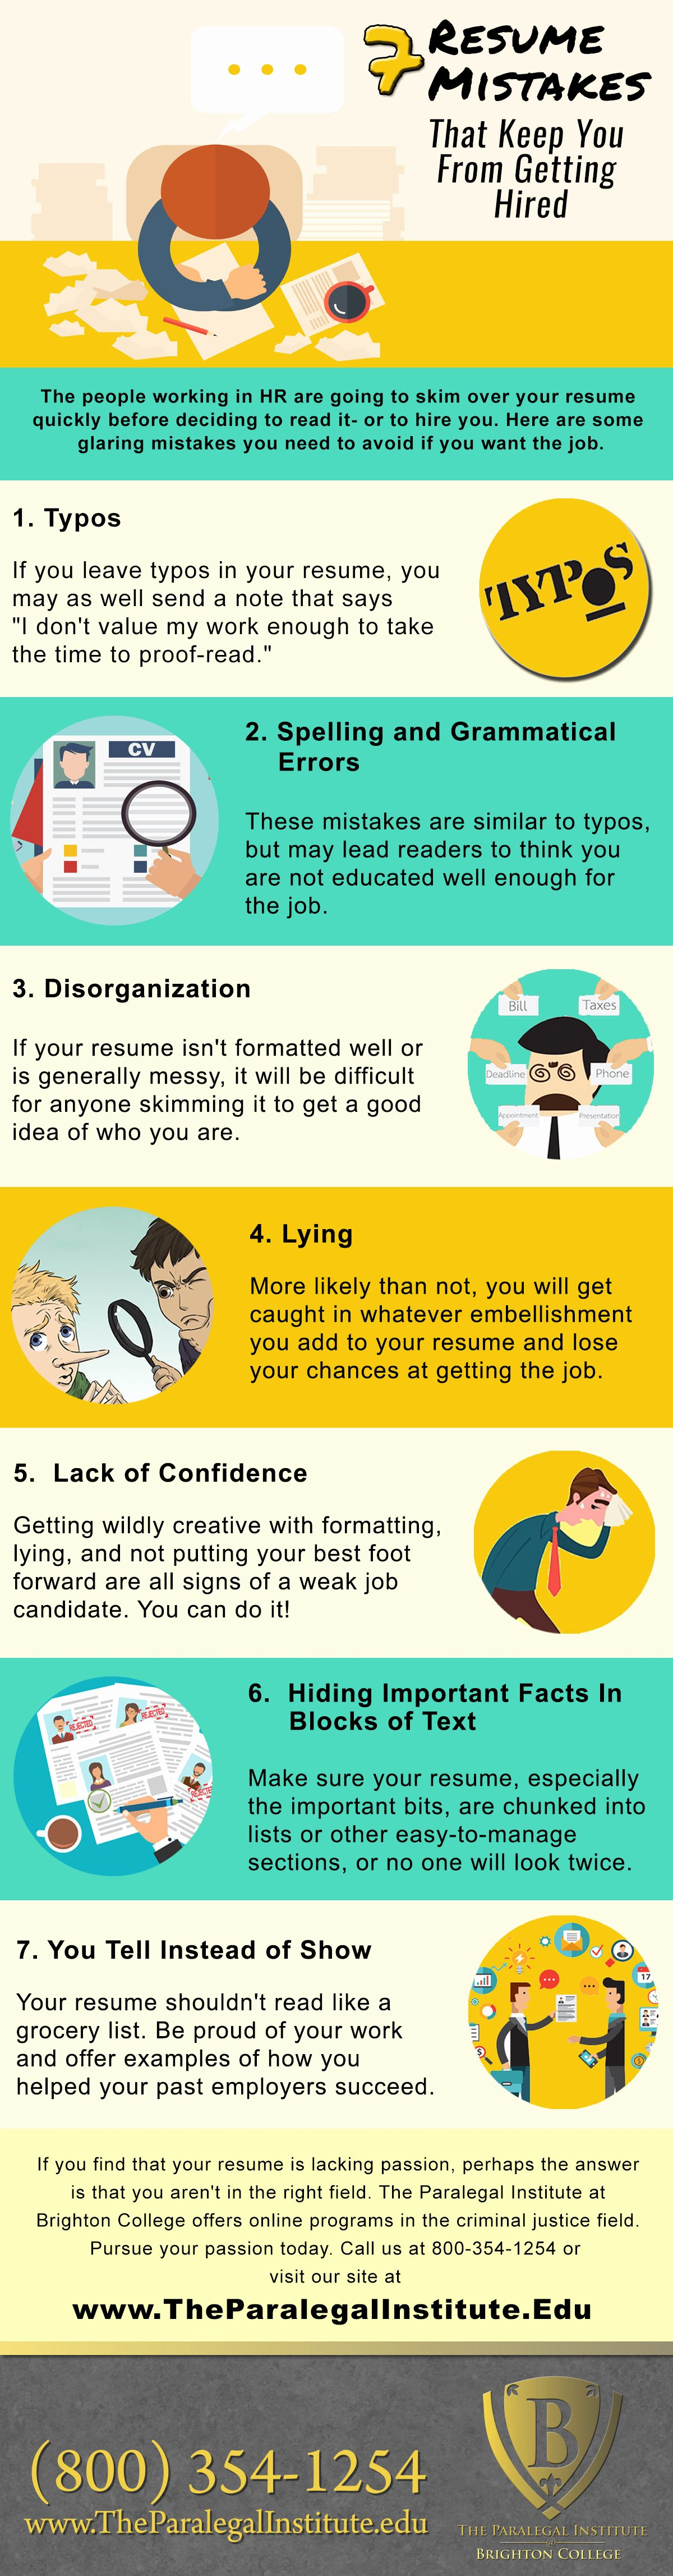 7 Resume Mistakes that Keep You From Getting Hired